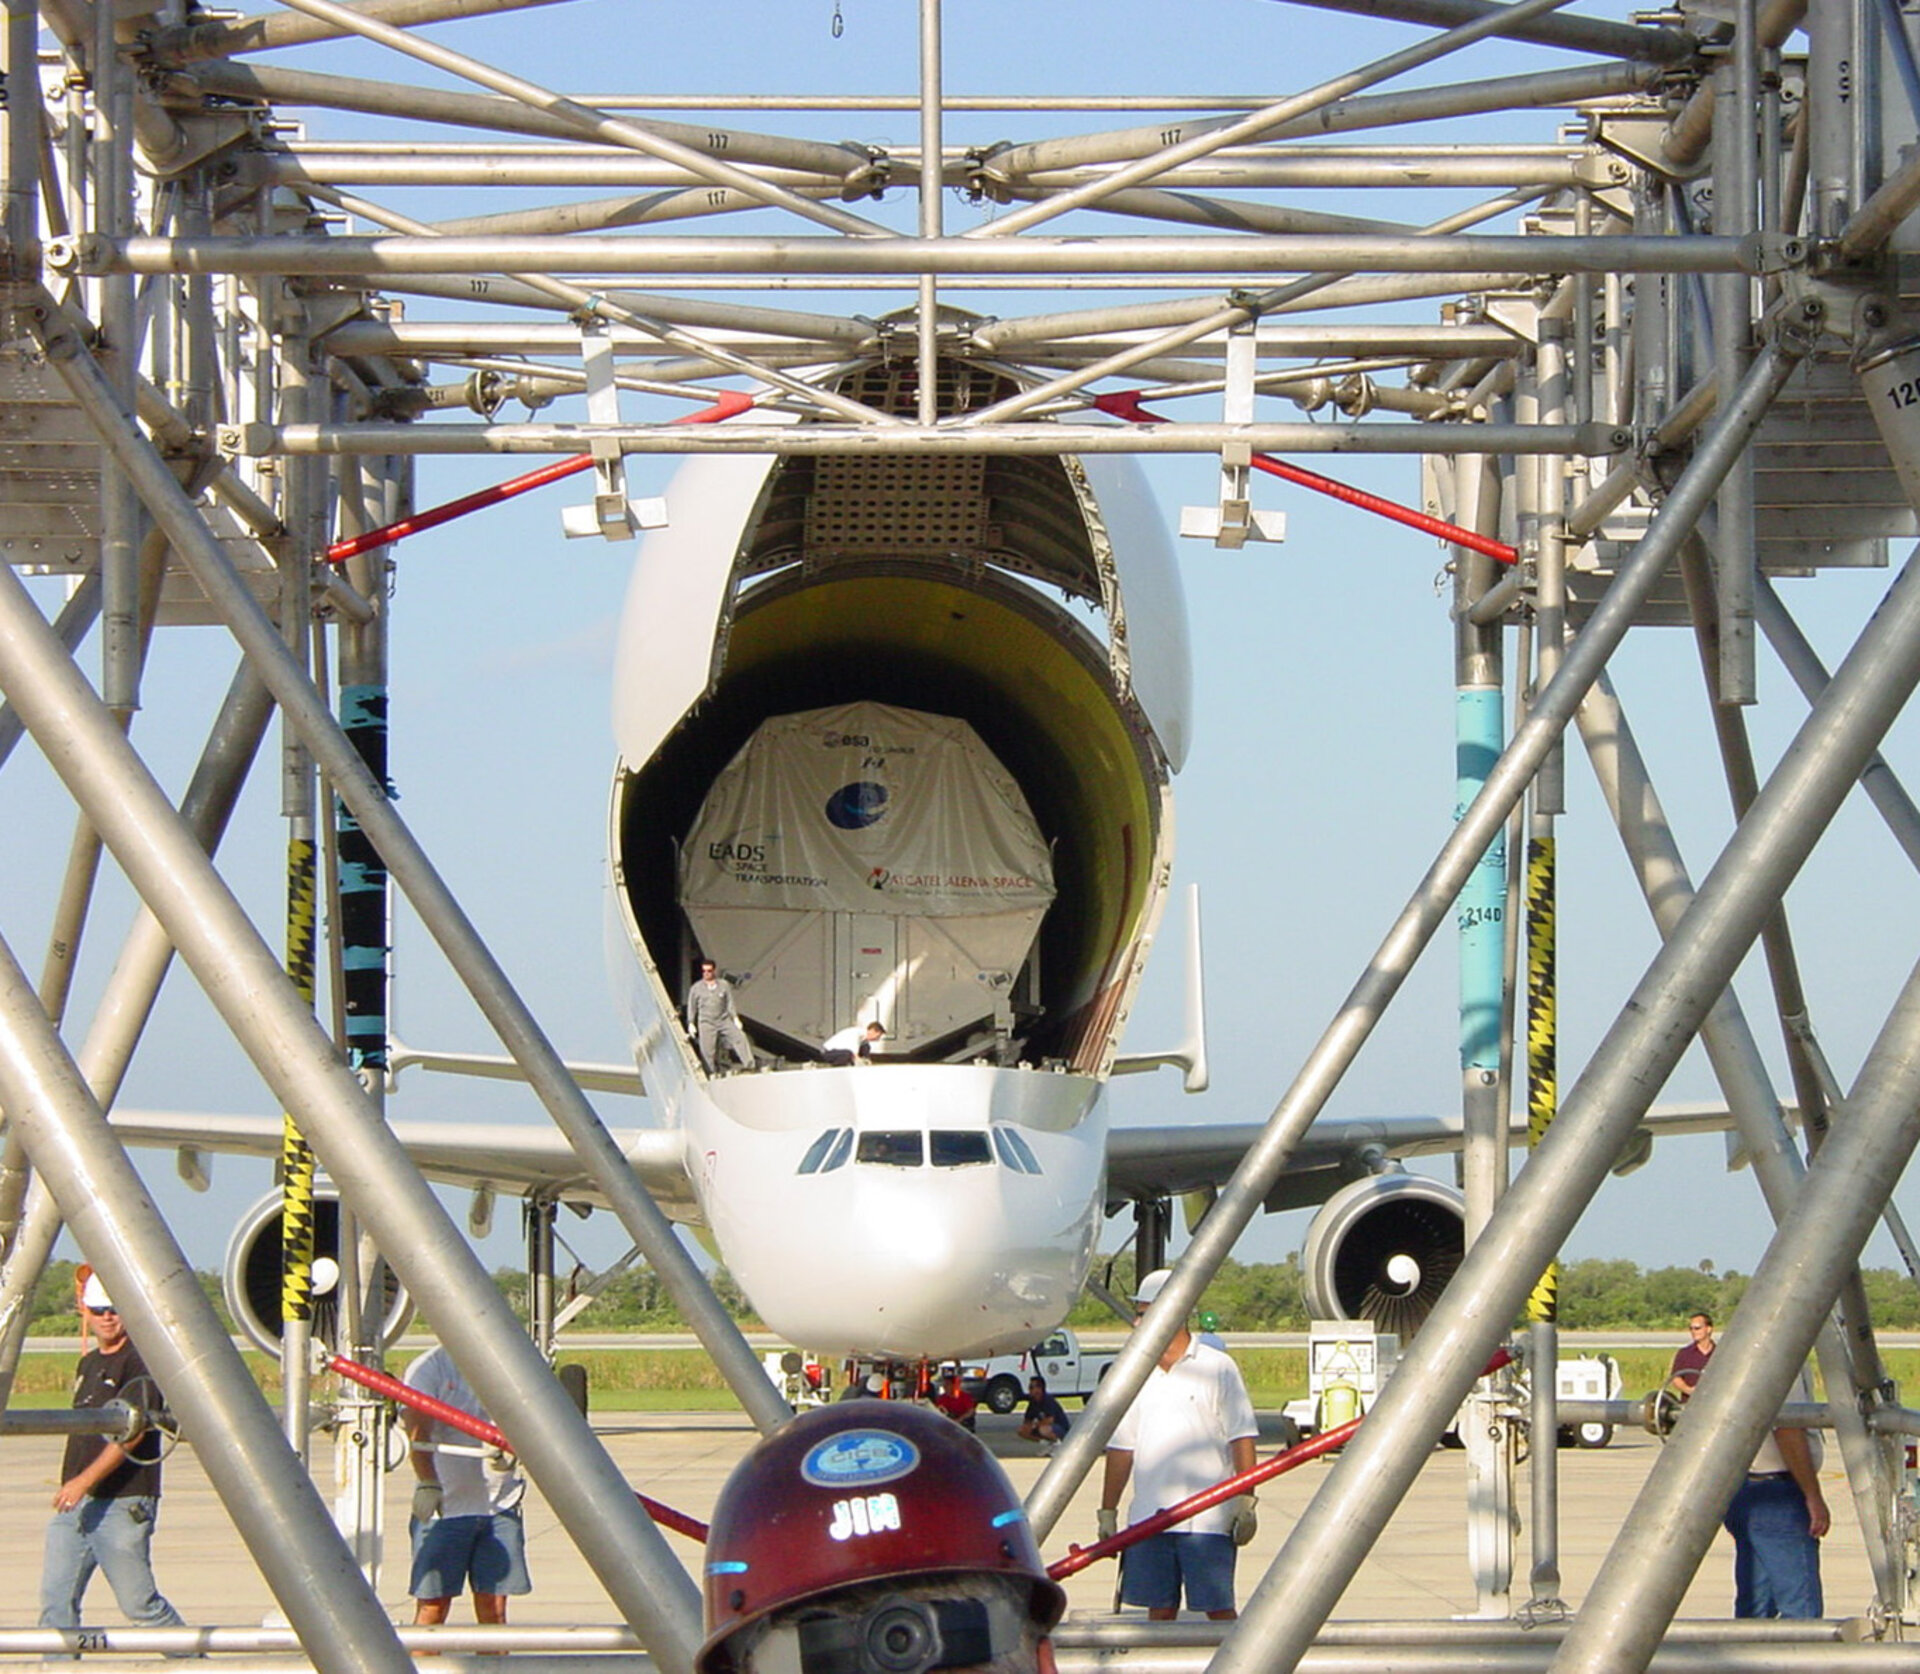 Transport container carrying Columbus laboratory is removed from Beluga aircraft at NASA's Kennedy Space Center